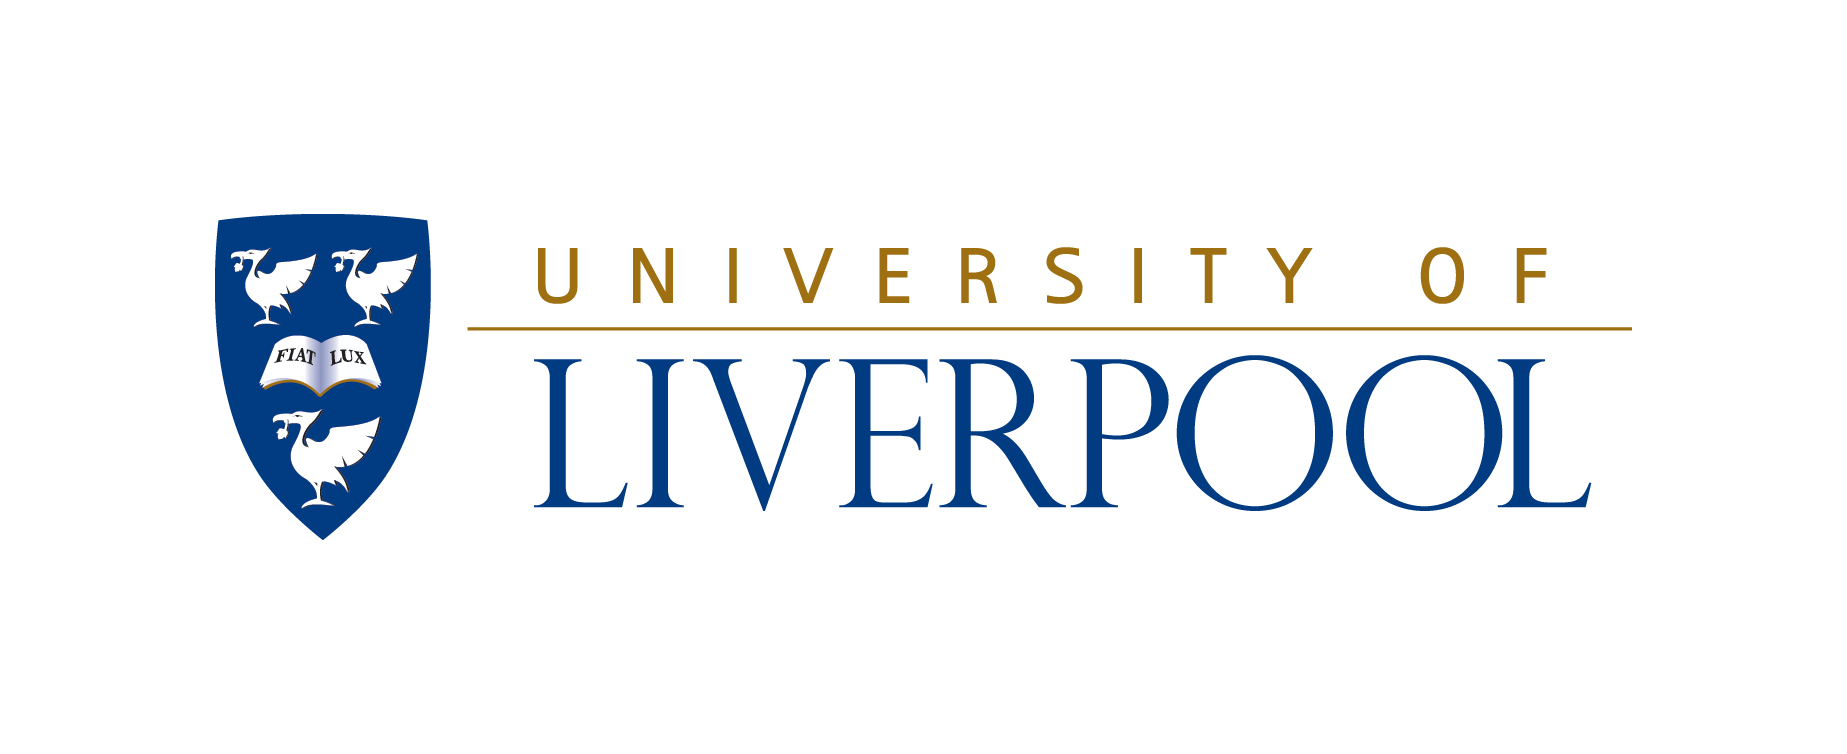 University of Liverpool banner logo